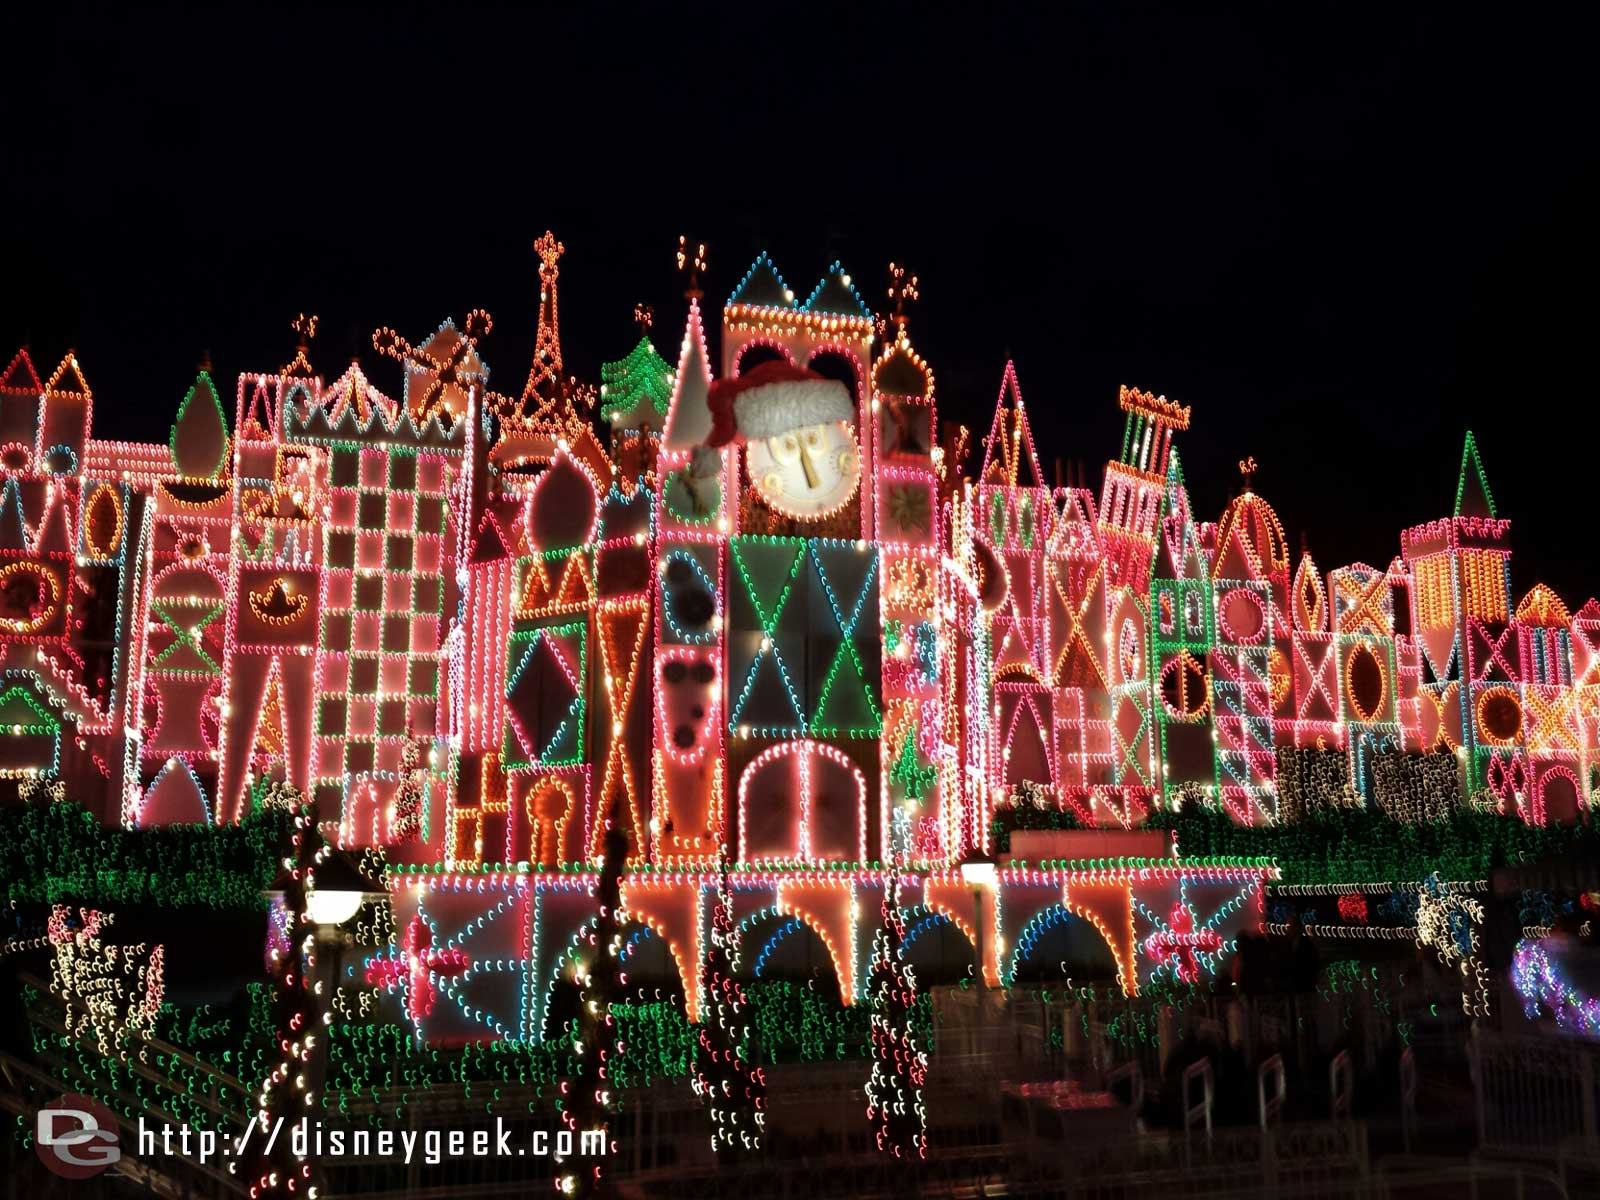 Small World Holiday lights just turned on for the evening #Disneyland